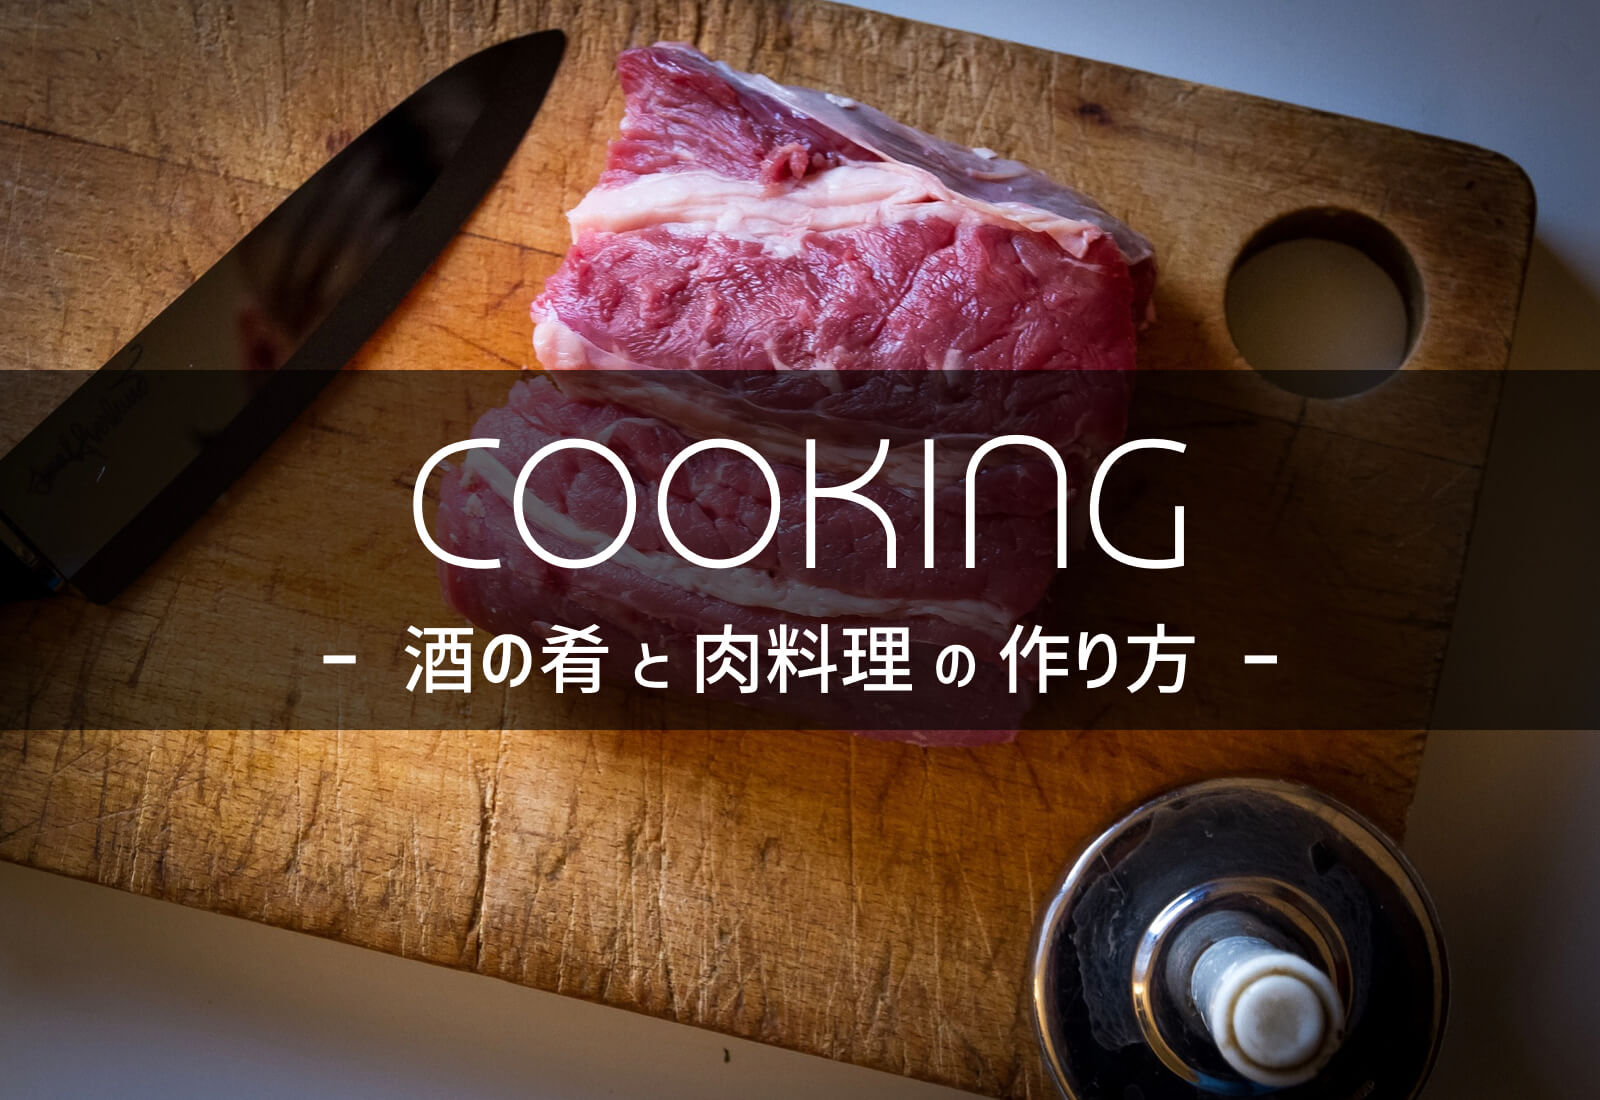 COOKING|酒の肴と肉料理の作り方